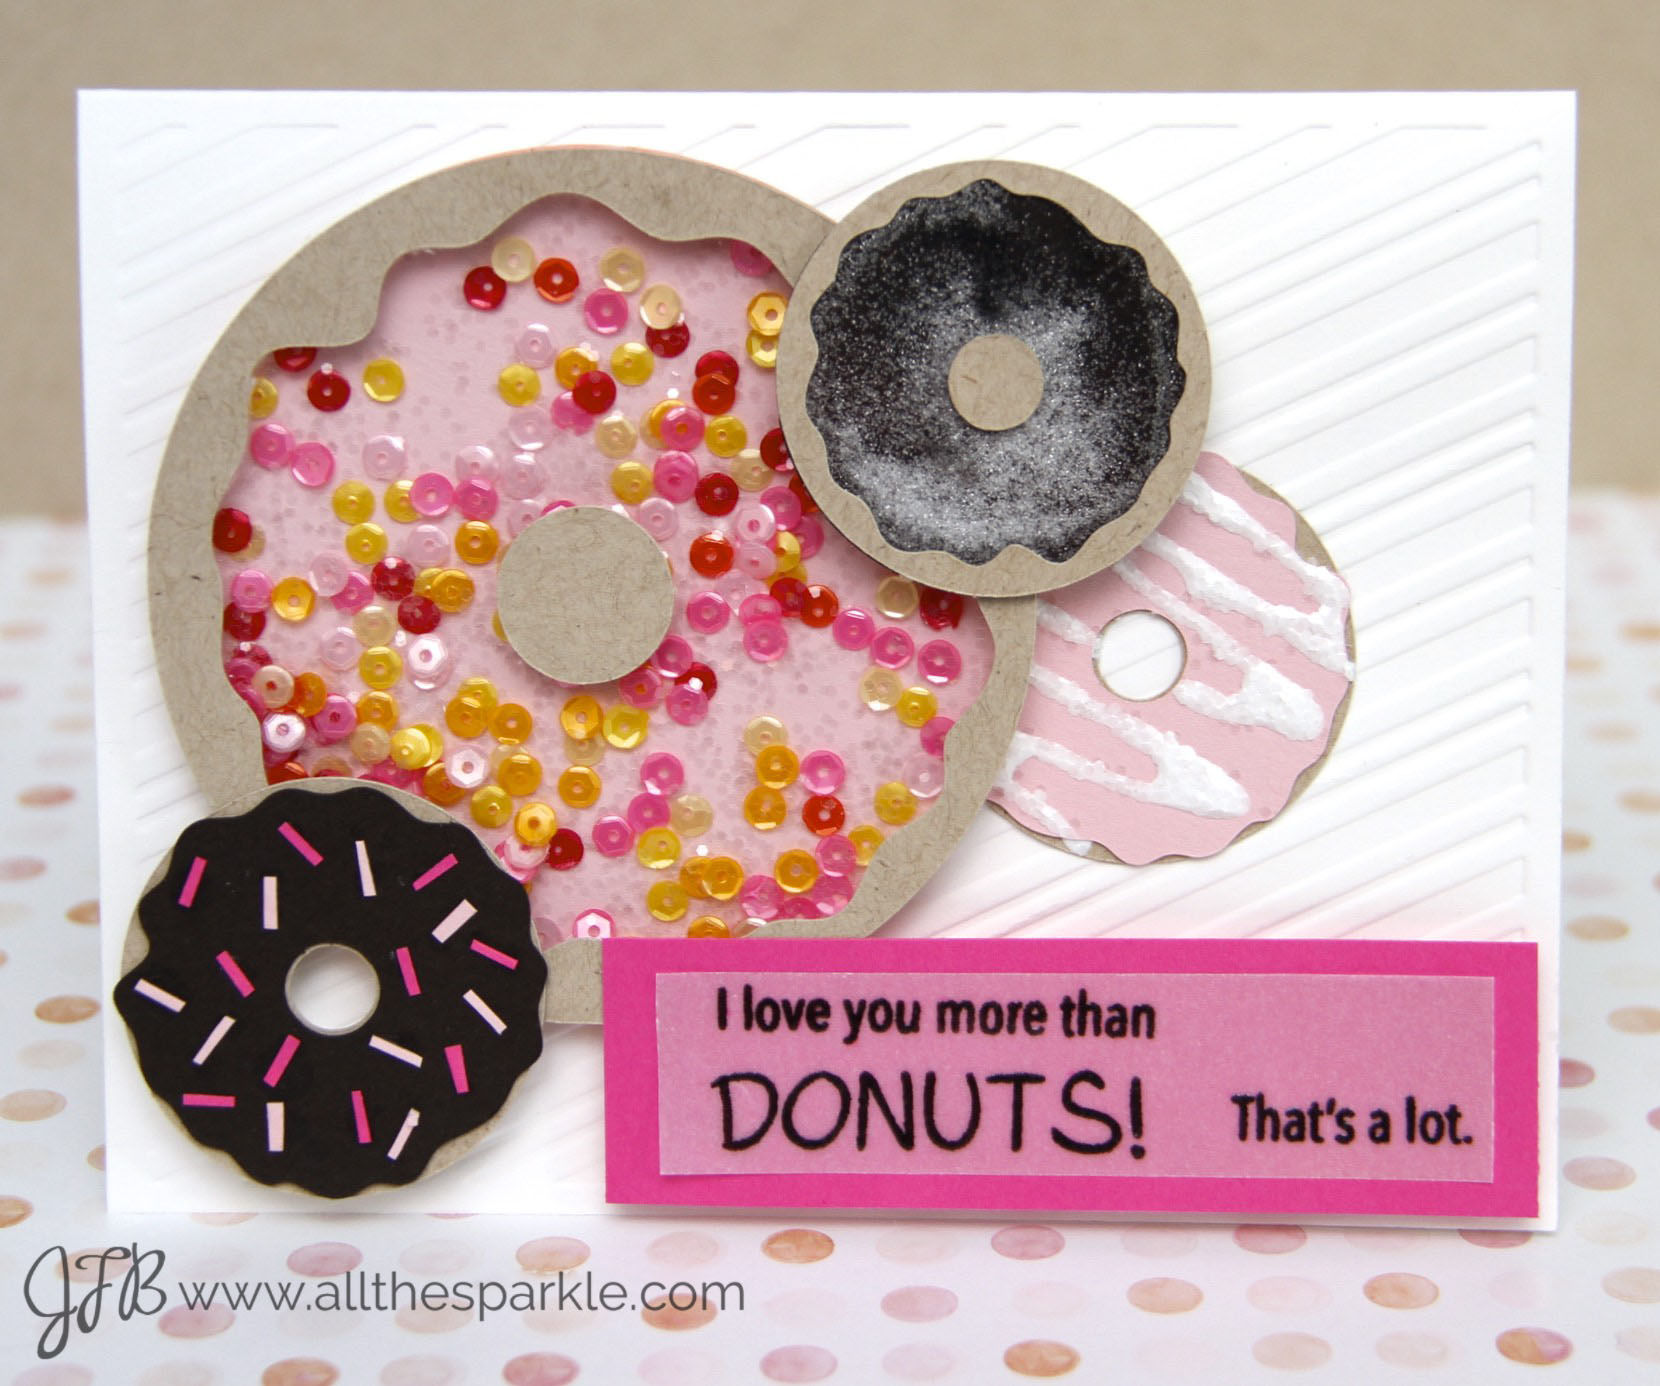 Curtain Call Inspiration Challenge: Donut Delight